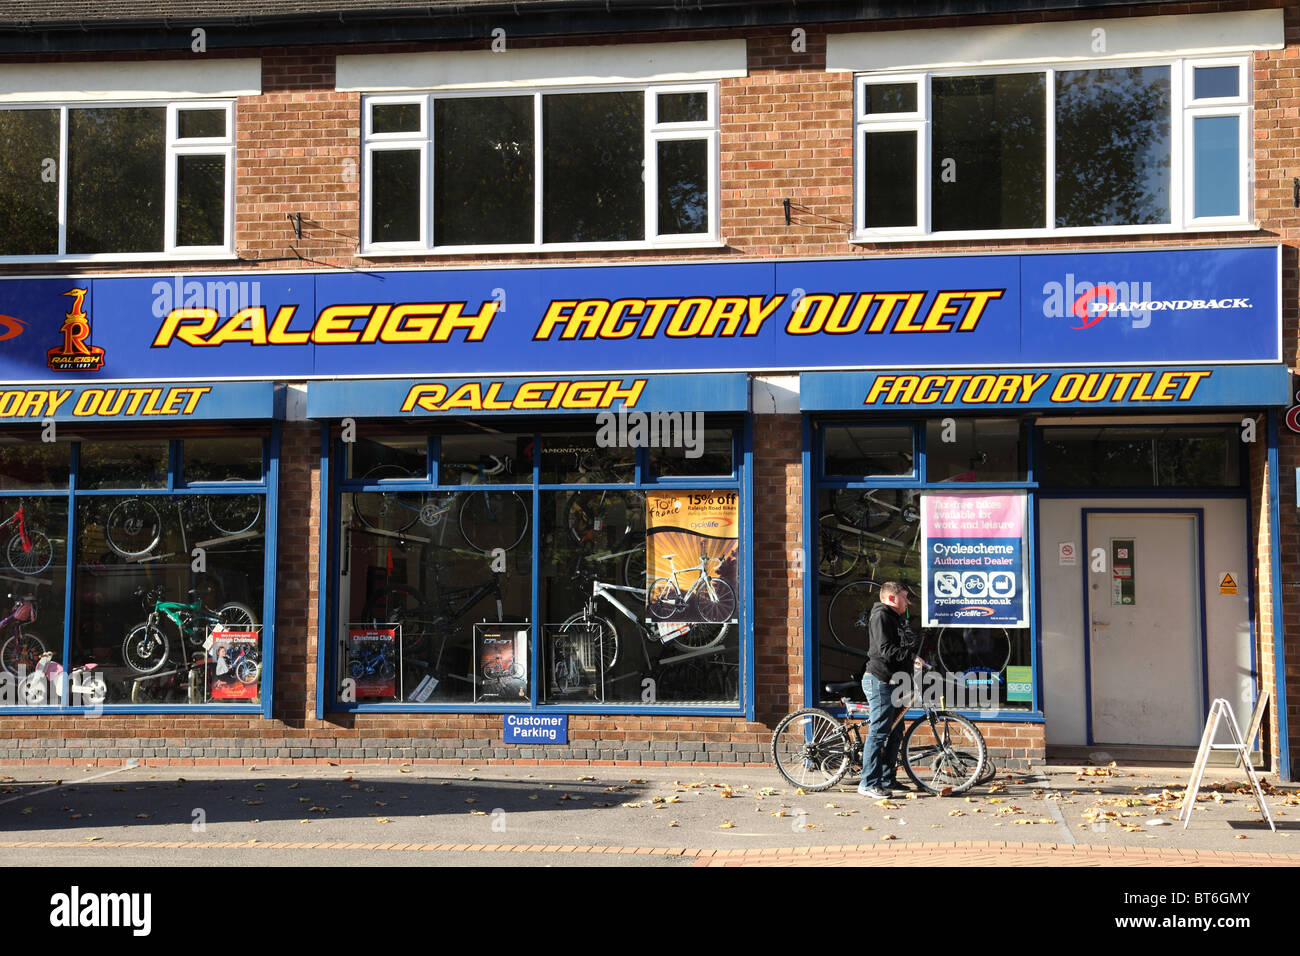 The Raleigh cycle factory outlet in Nottingham, England, U.K Stock Photo:  32106955 - Alamy